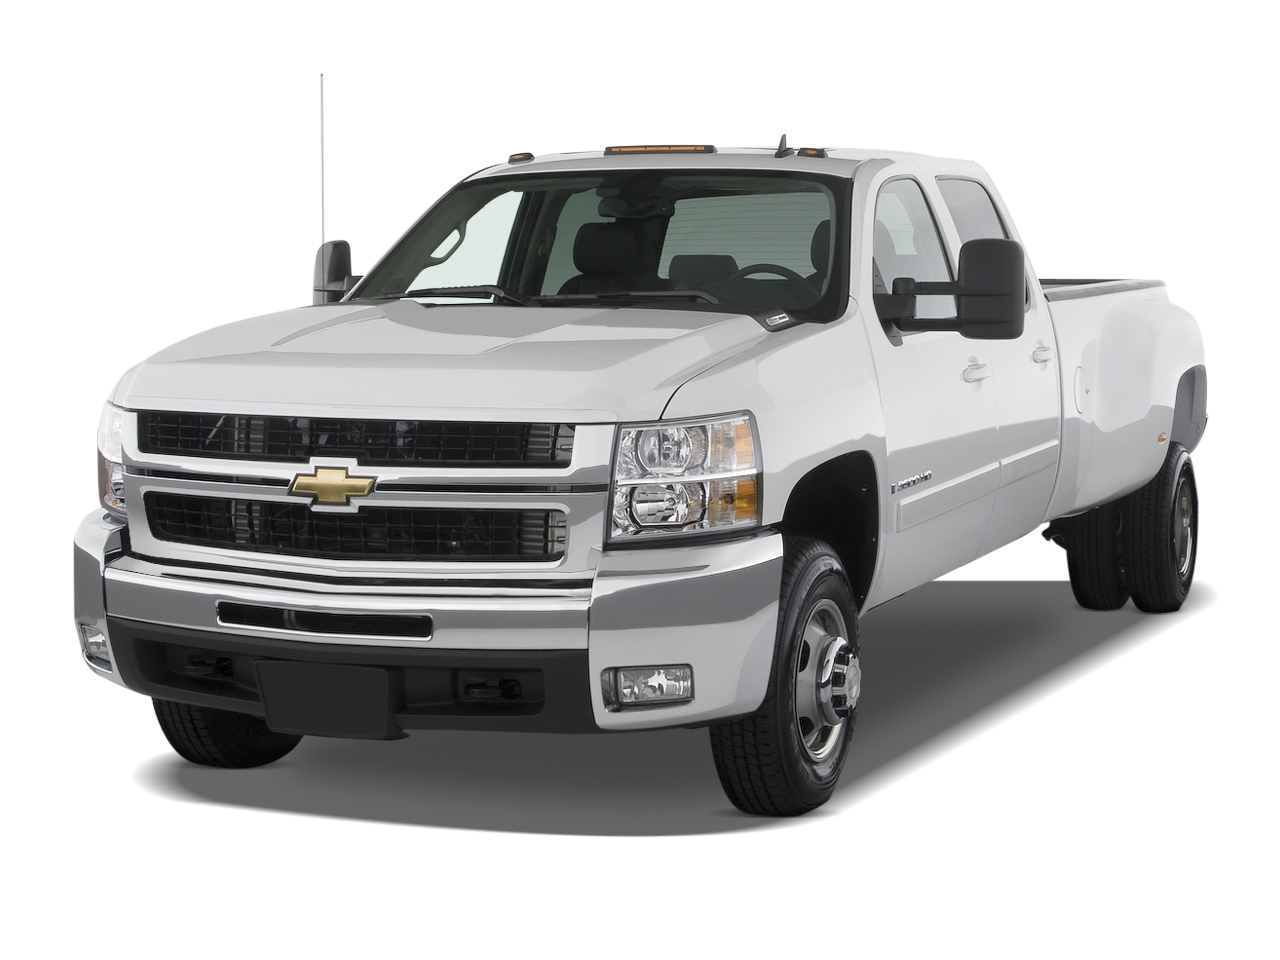 chevrolet silverado 3500 towing capacity 2017. Black Bedroom Furniture Sets. Home Design Ideas